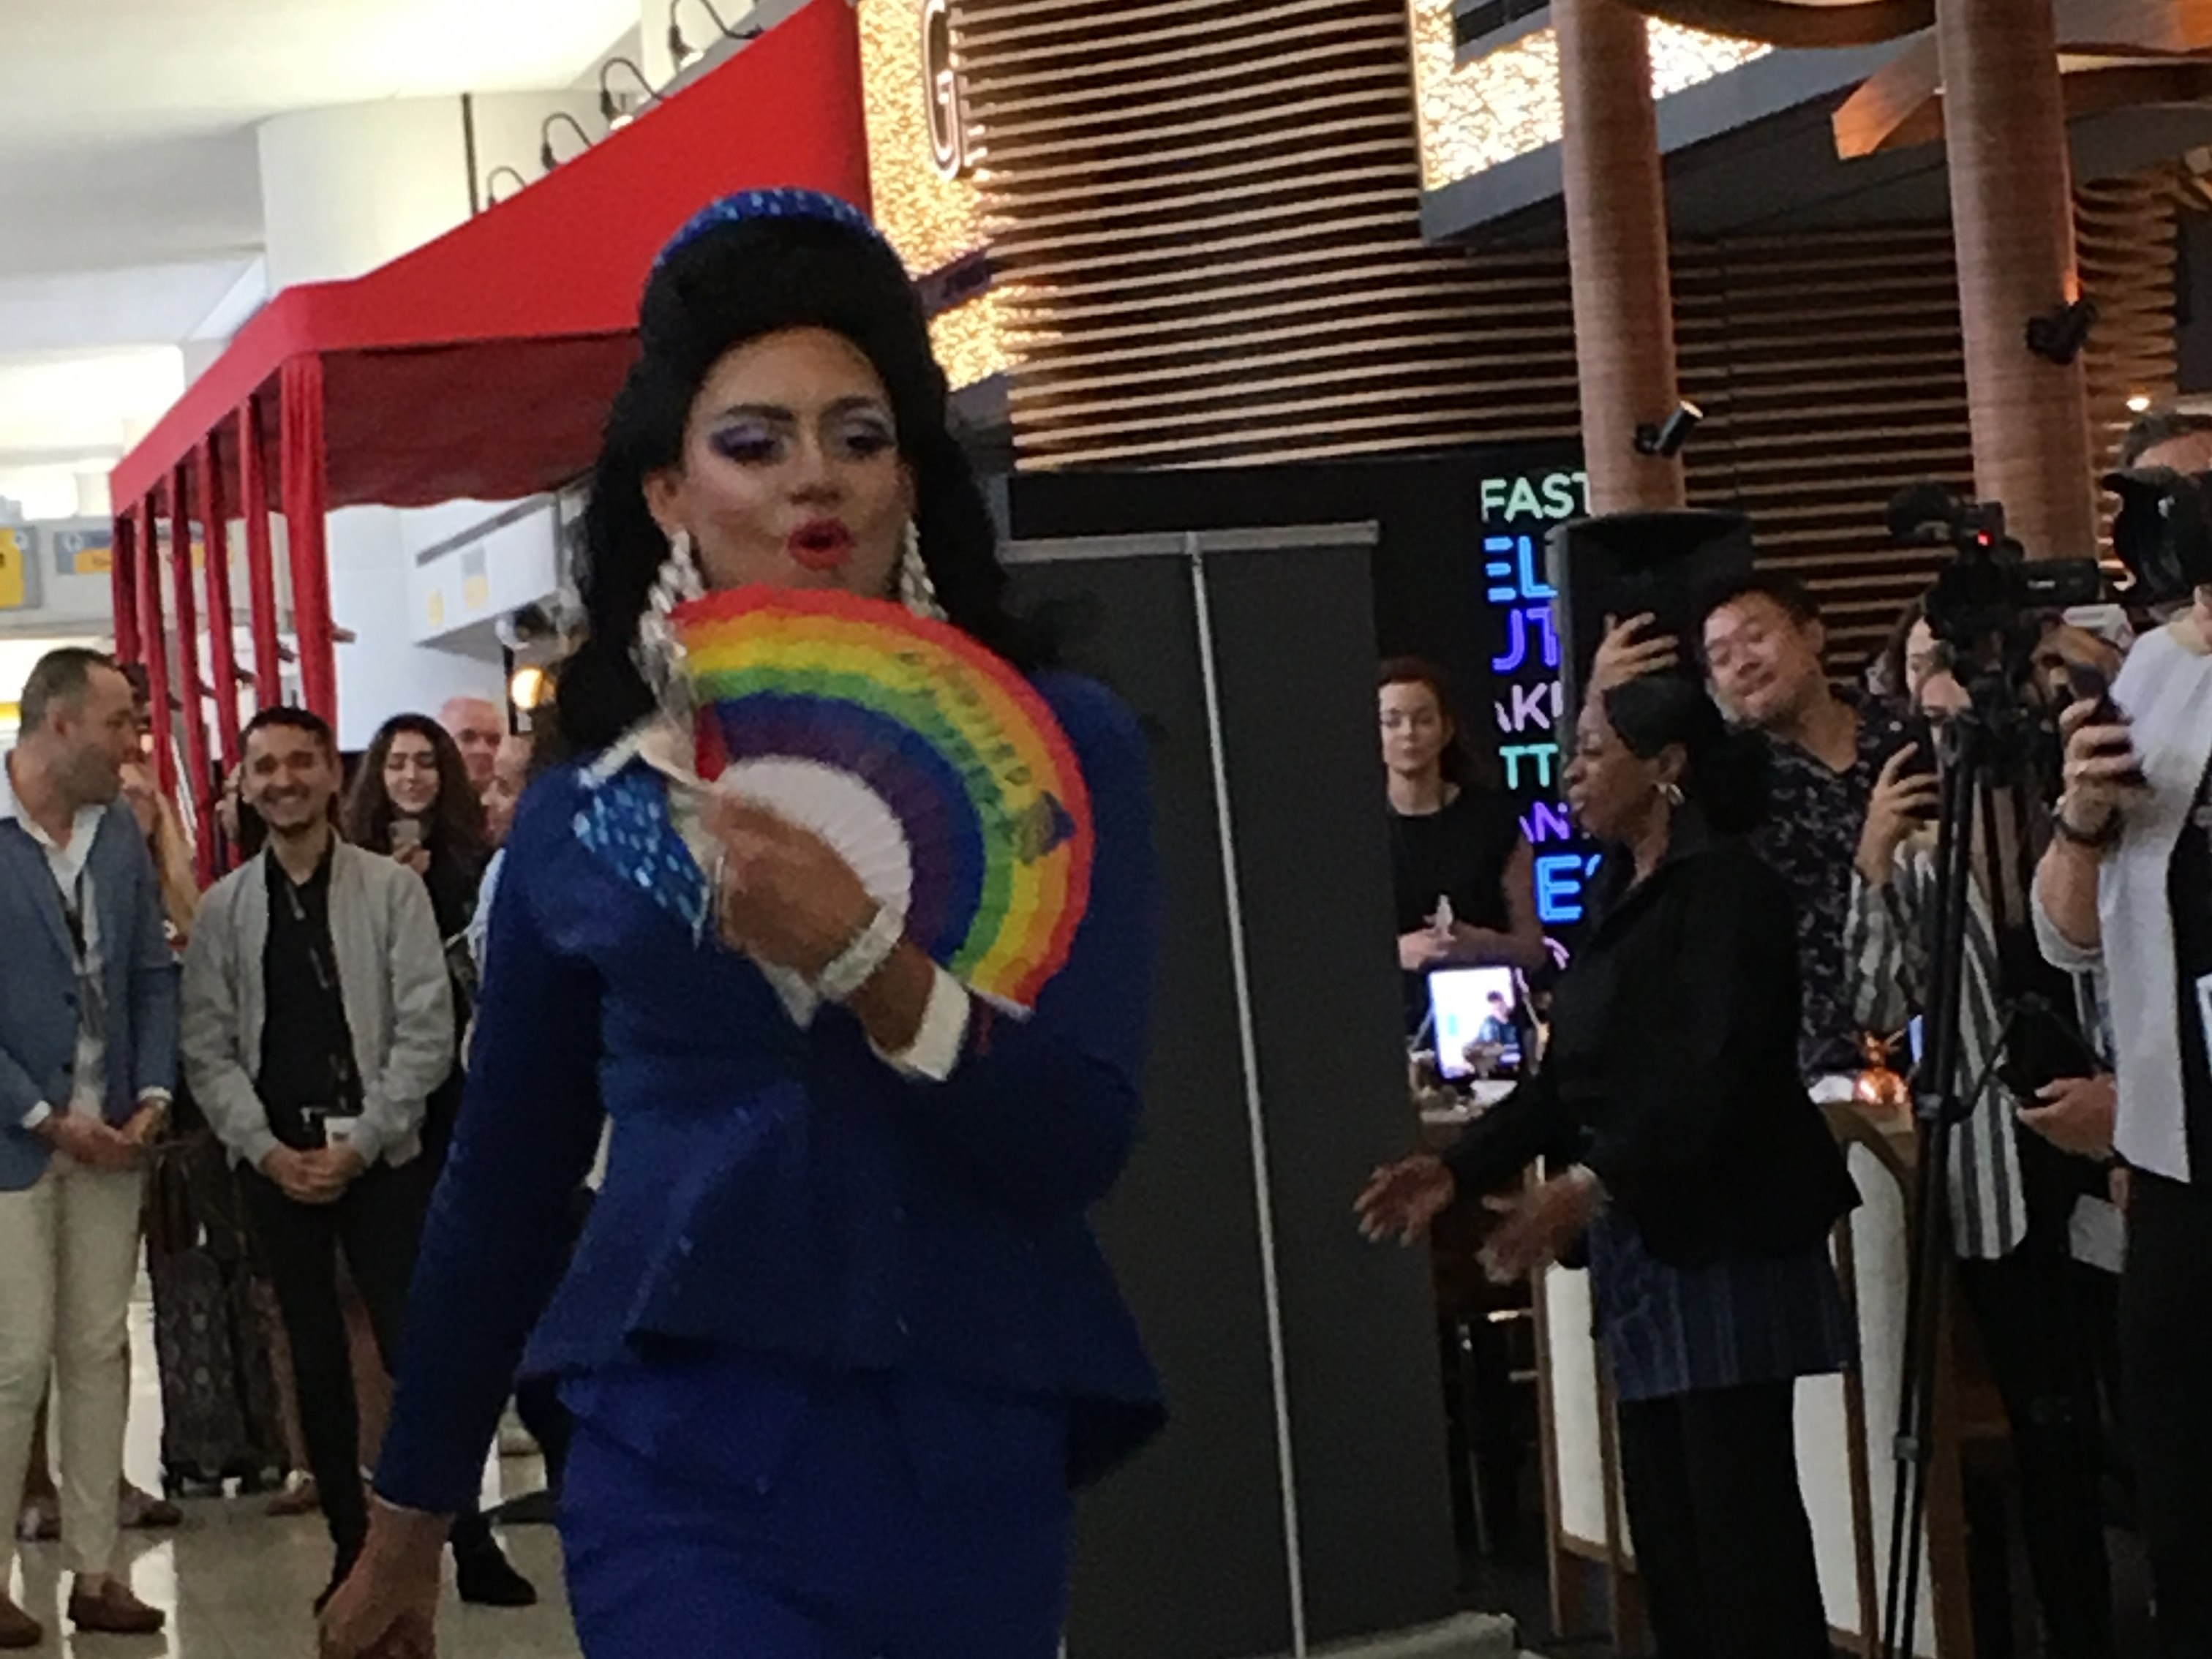 Drag queens, not planes, took over the runway at Newark airport